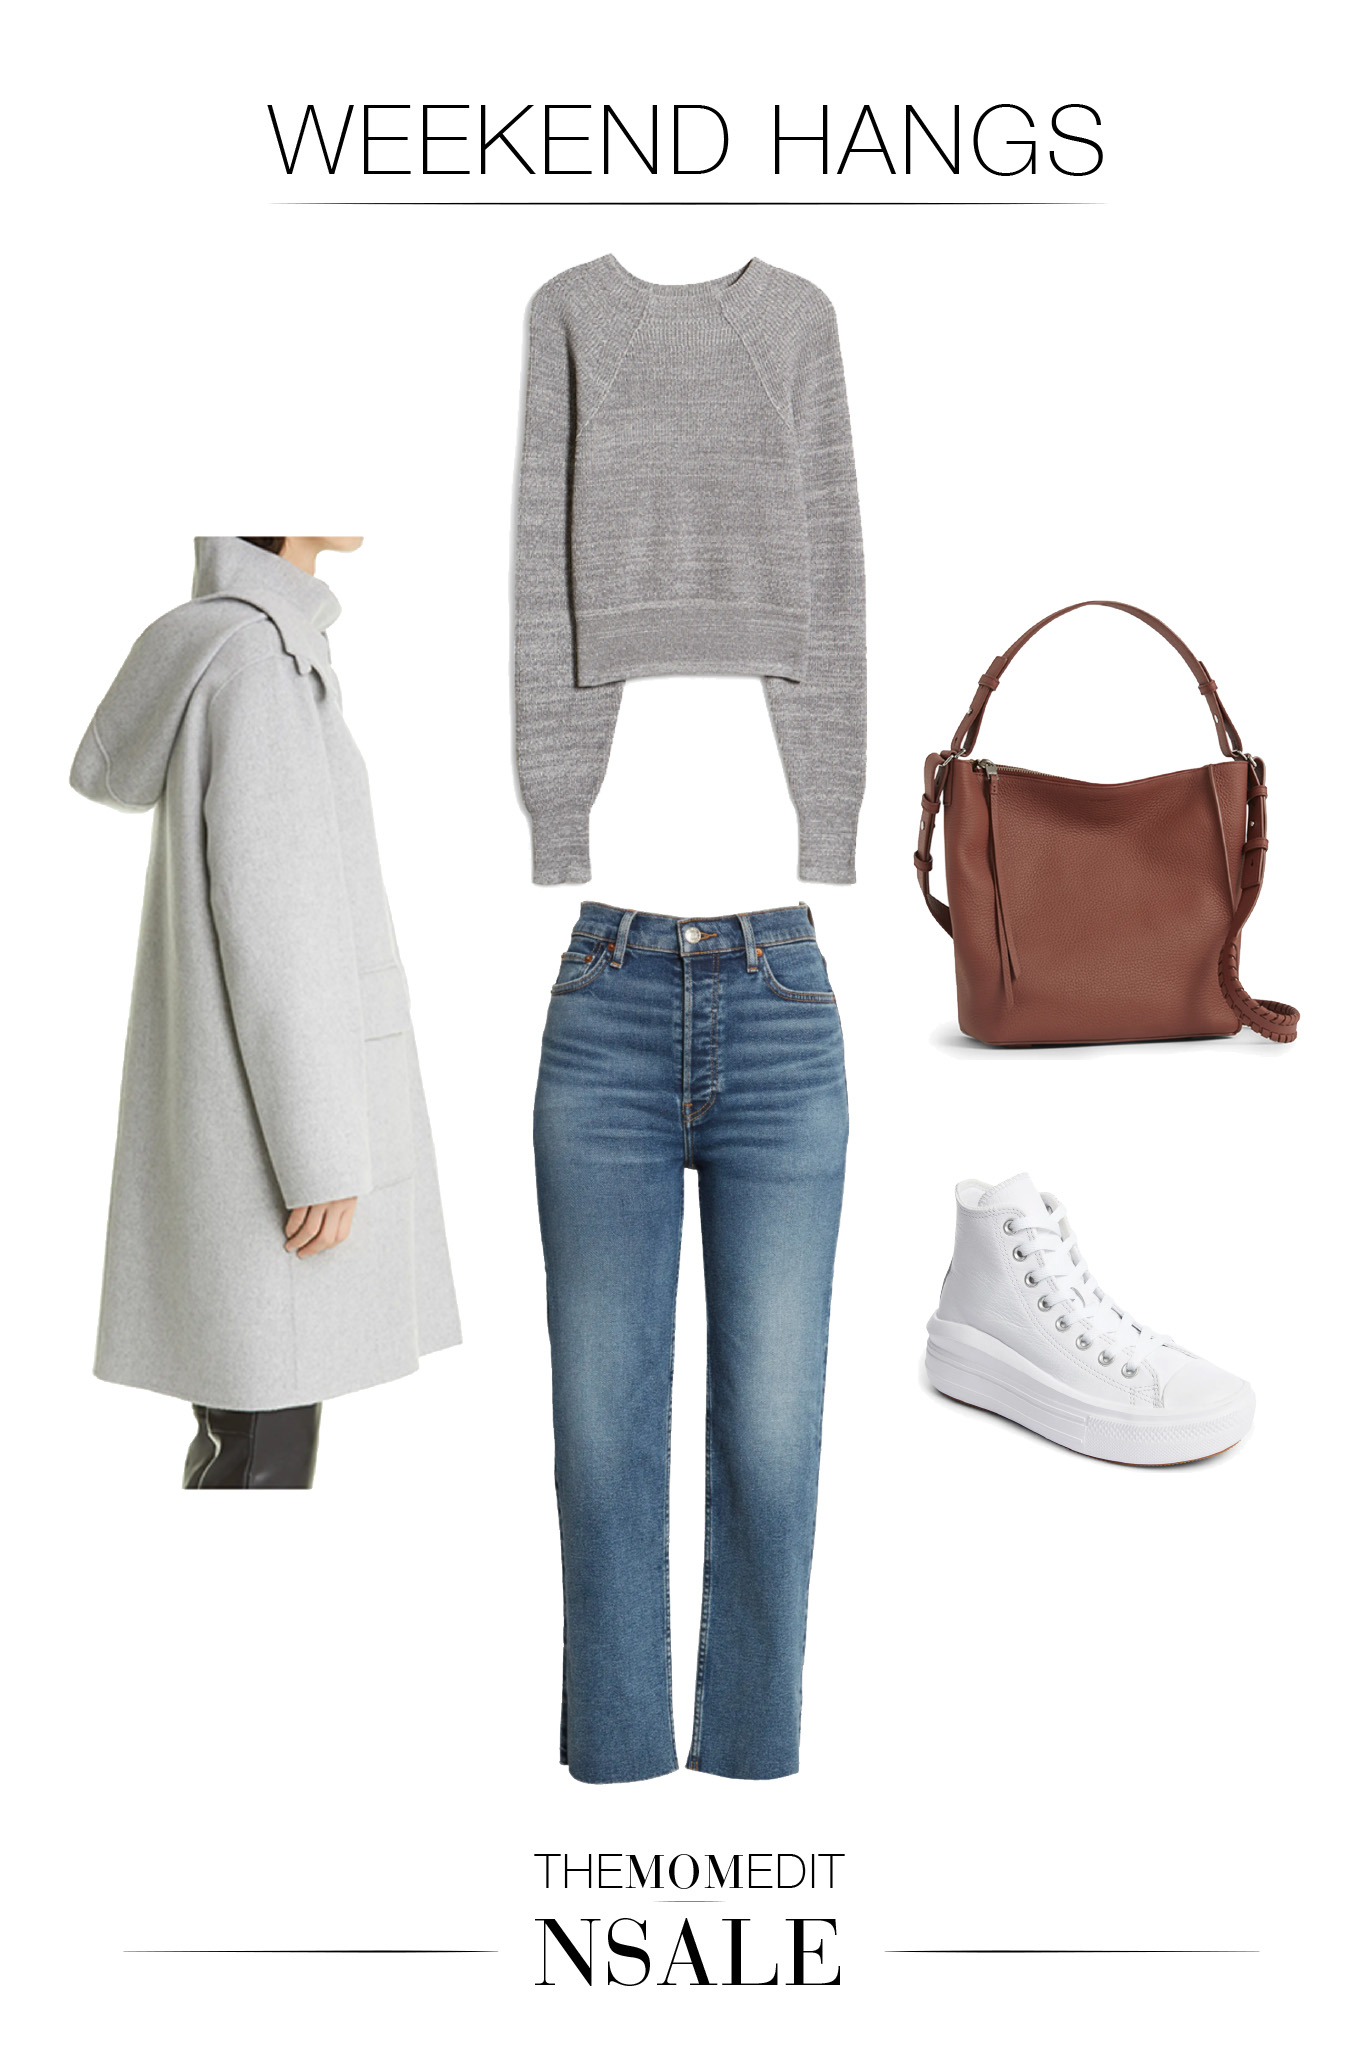 A capsule wardrobe featuring the gray Theory wool coat. Surprisingly, the outfit ideas are less neutrals, more color. We call this capsule wardrobe: The Girly Minimalist.